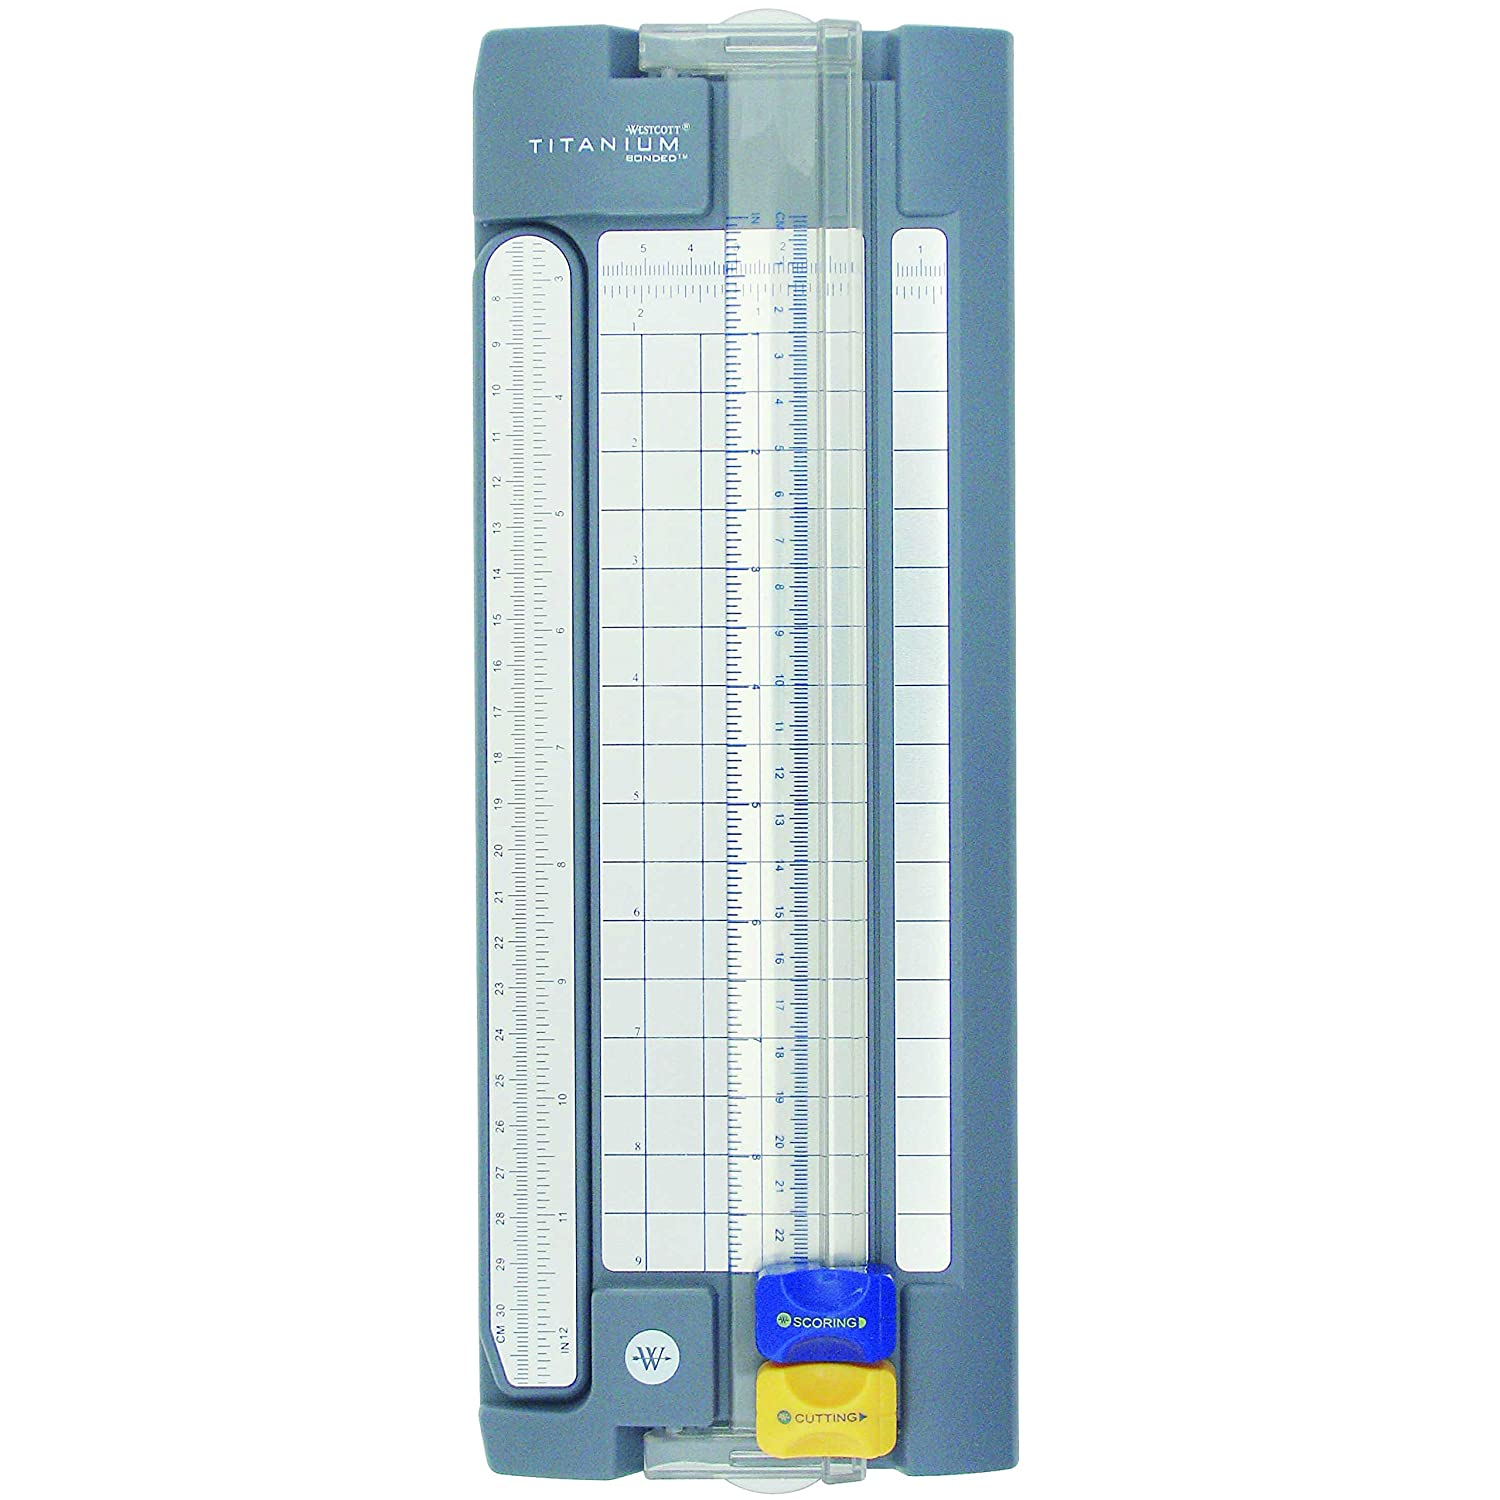 Westcott Paper Trimmer With Titanium Bonded Cut And Score Blades, 9 9 Acme United 13782